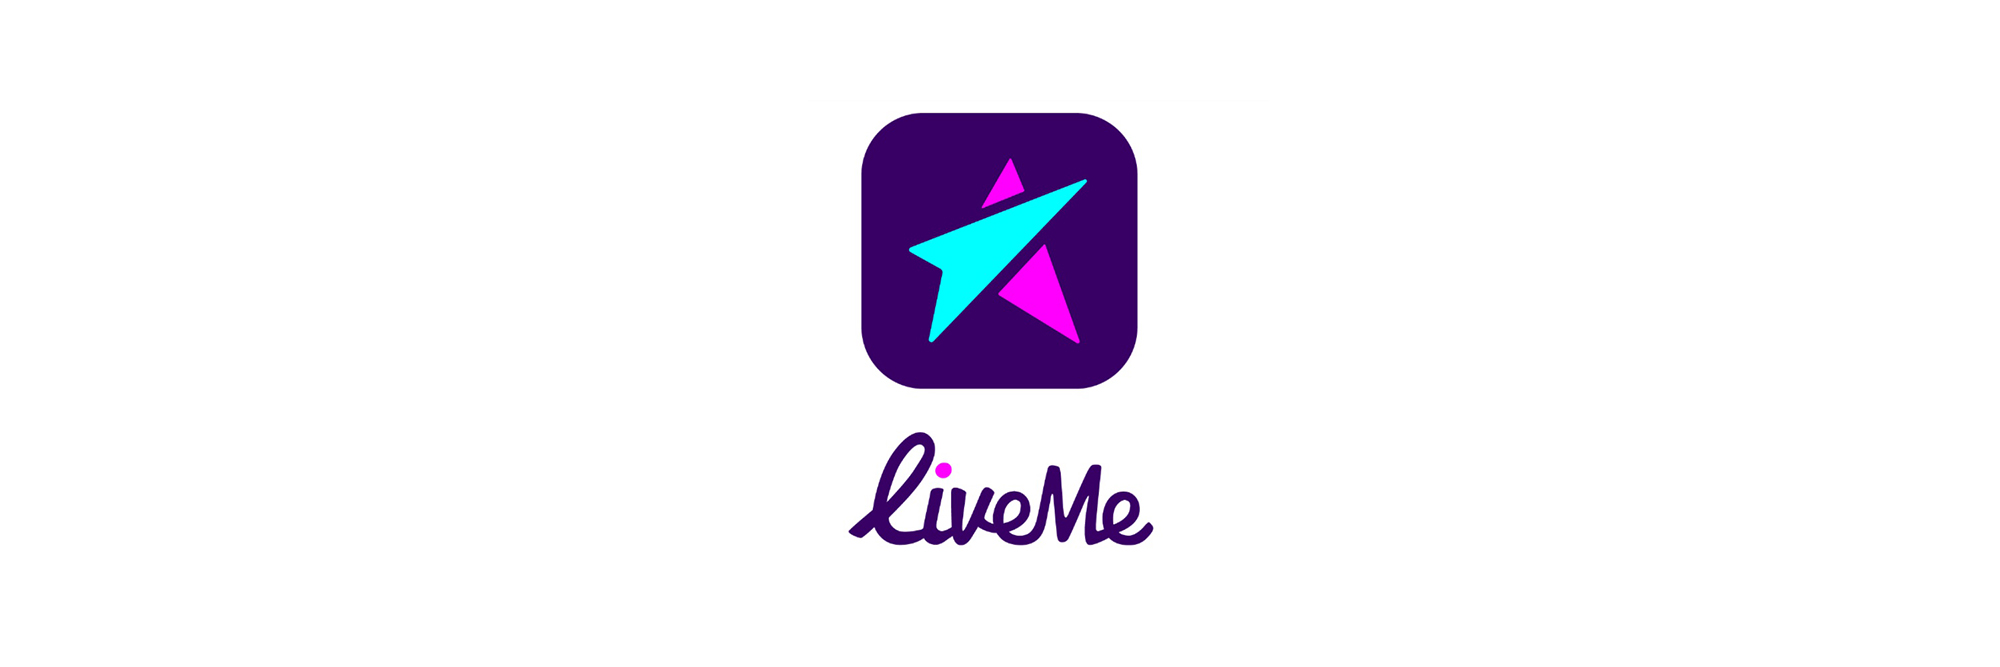 live me logo social media safety